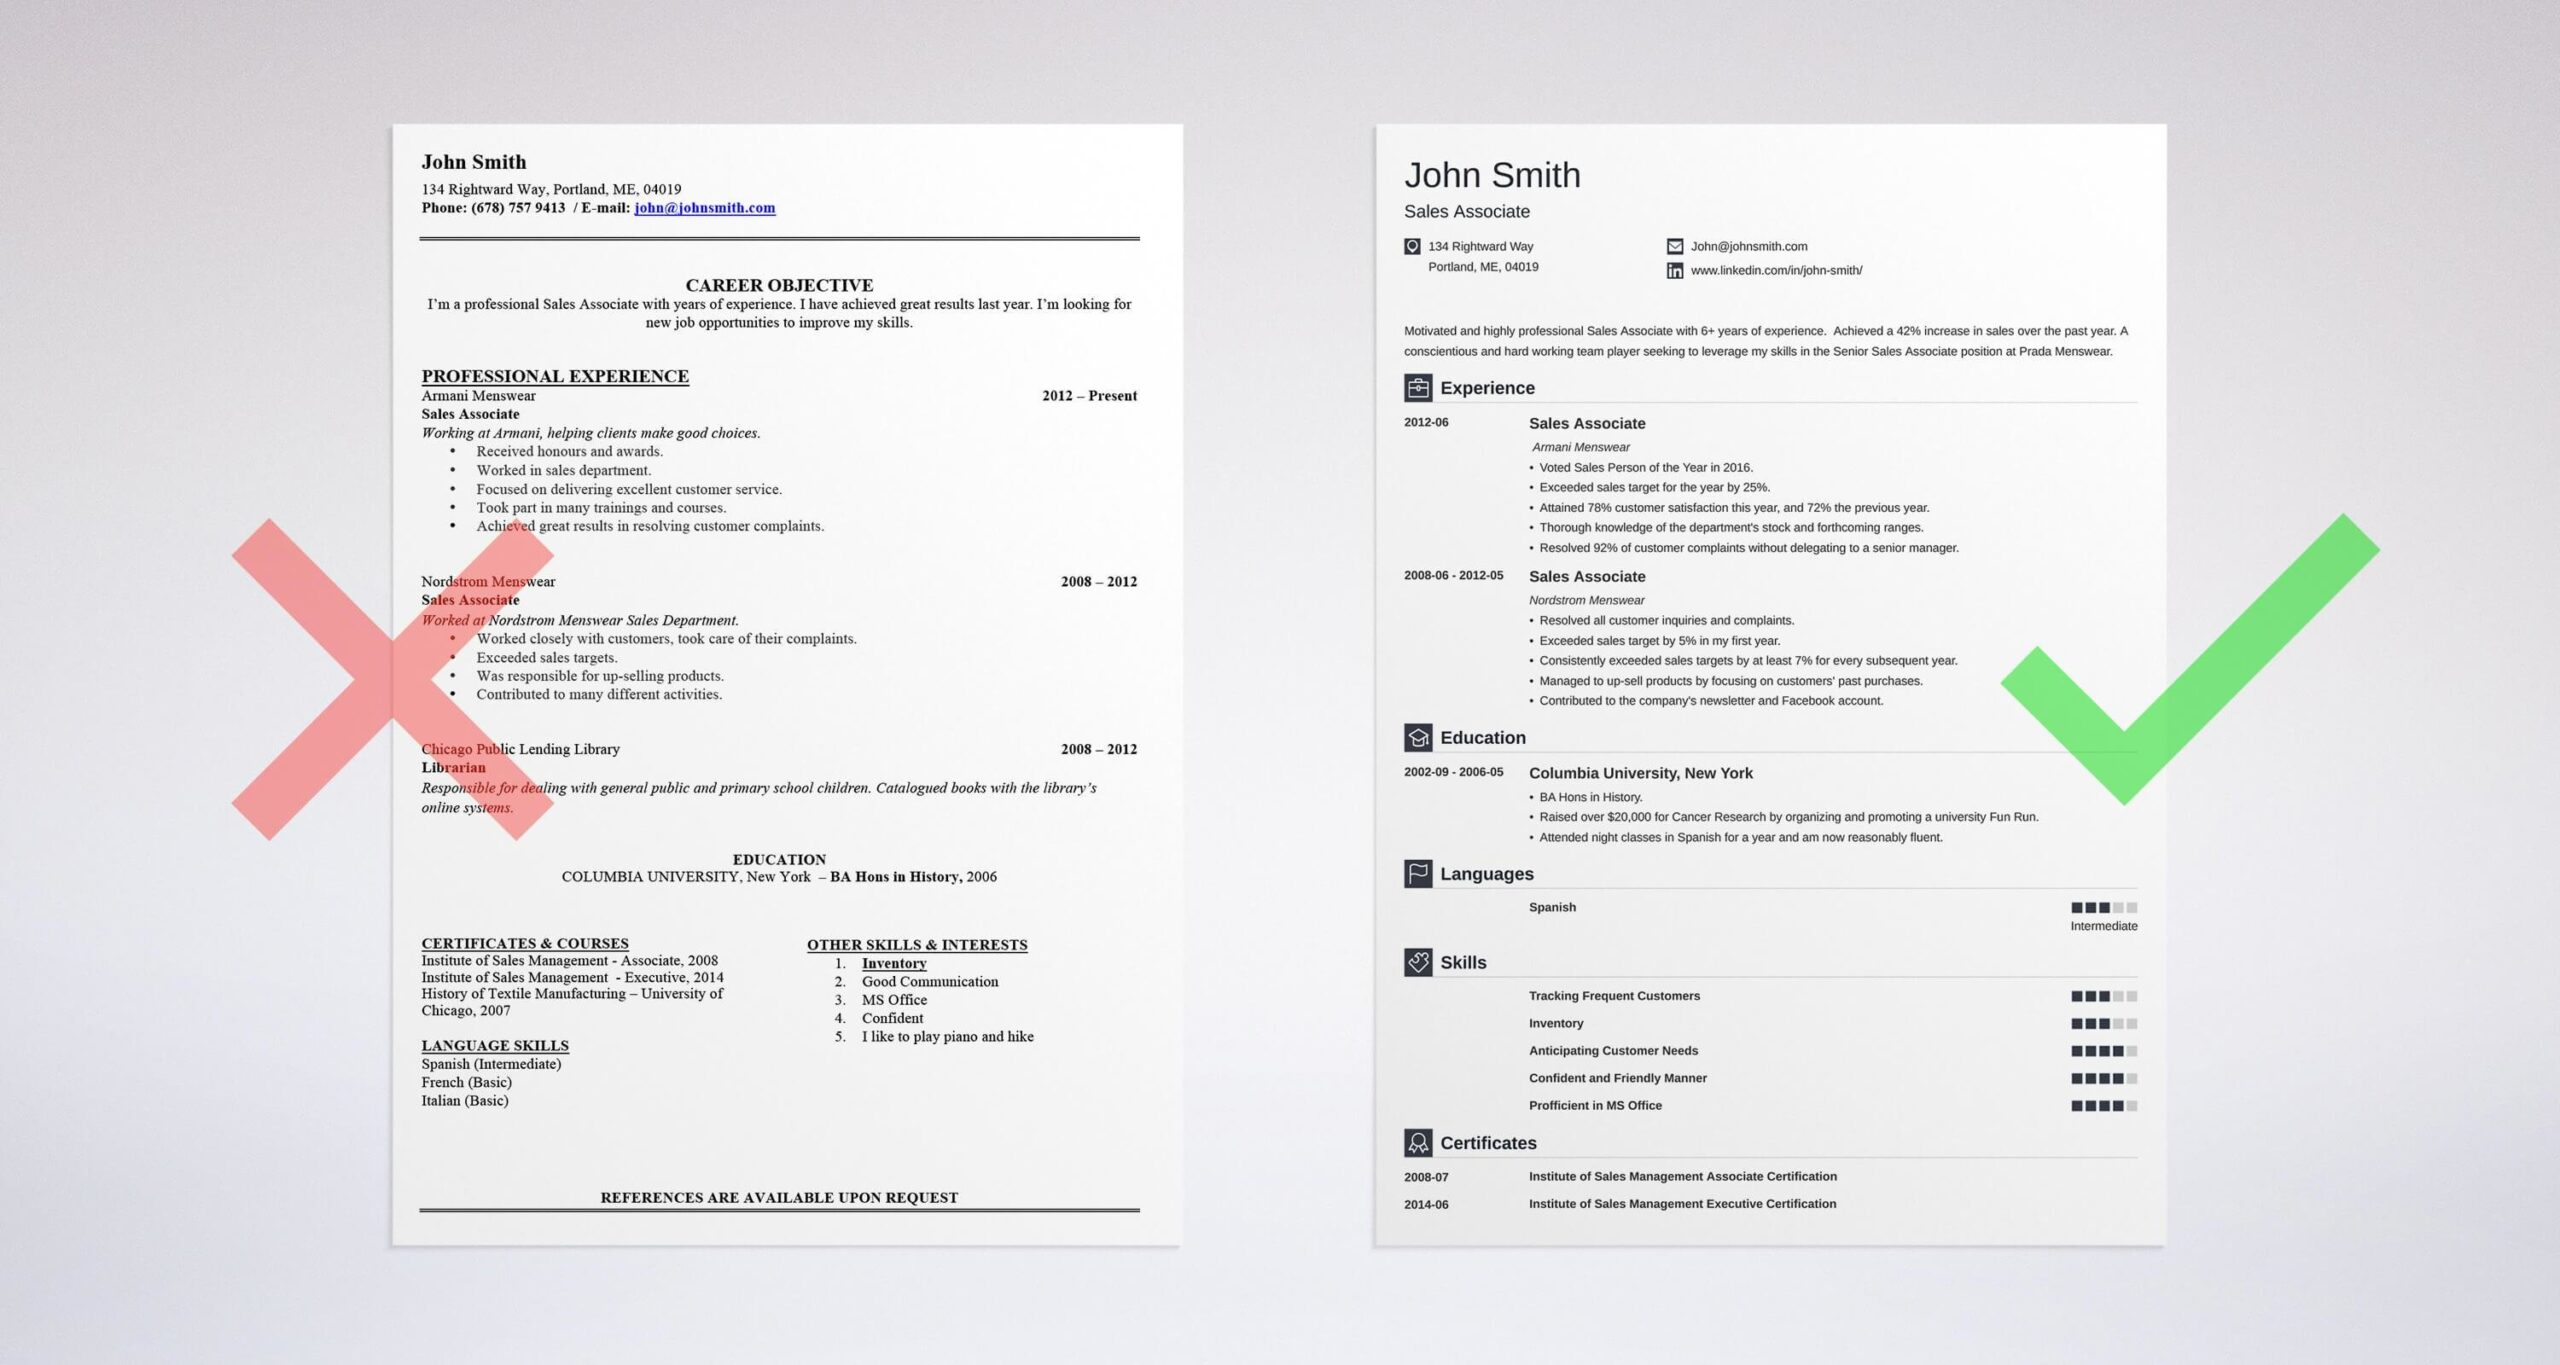 professional resume summary examples statements on template light writers finance Resume Professional Summary Resume Examples